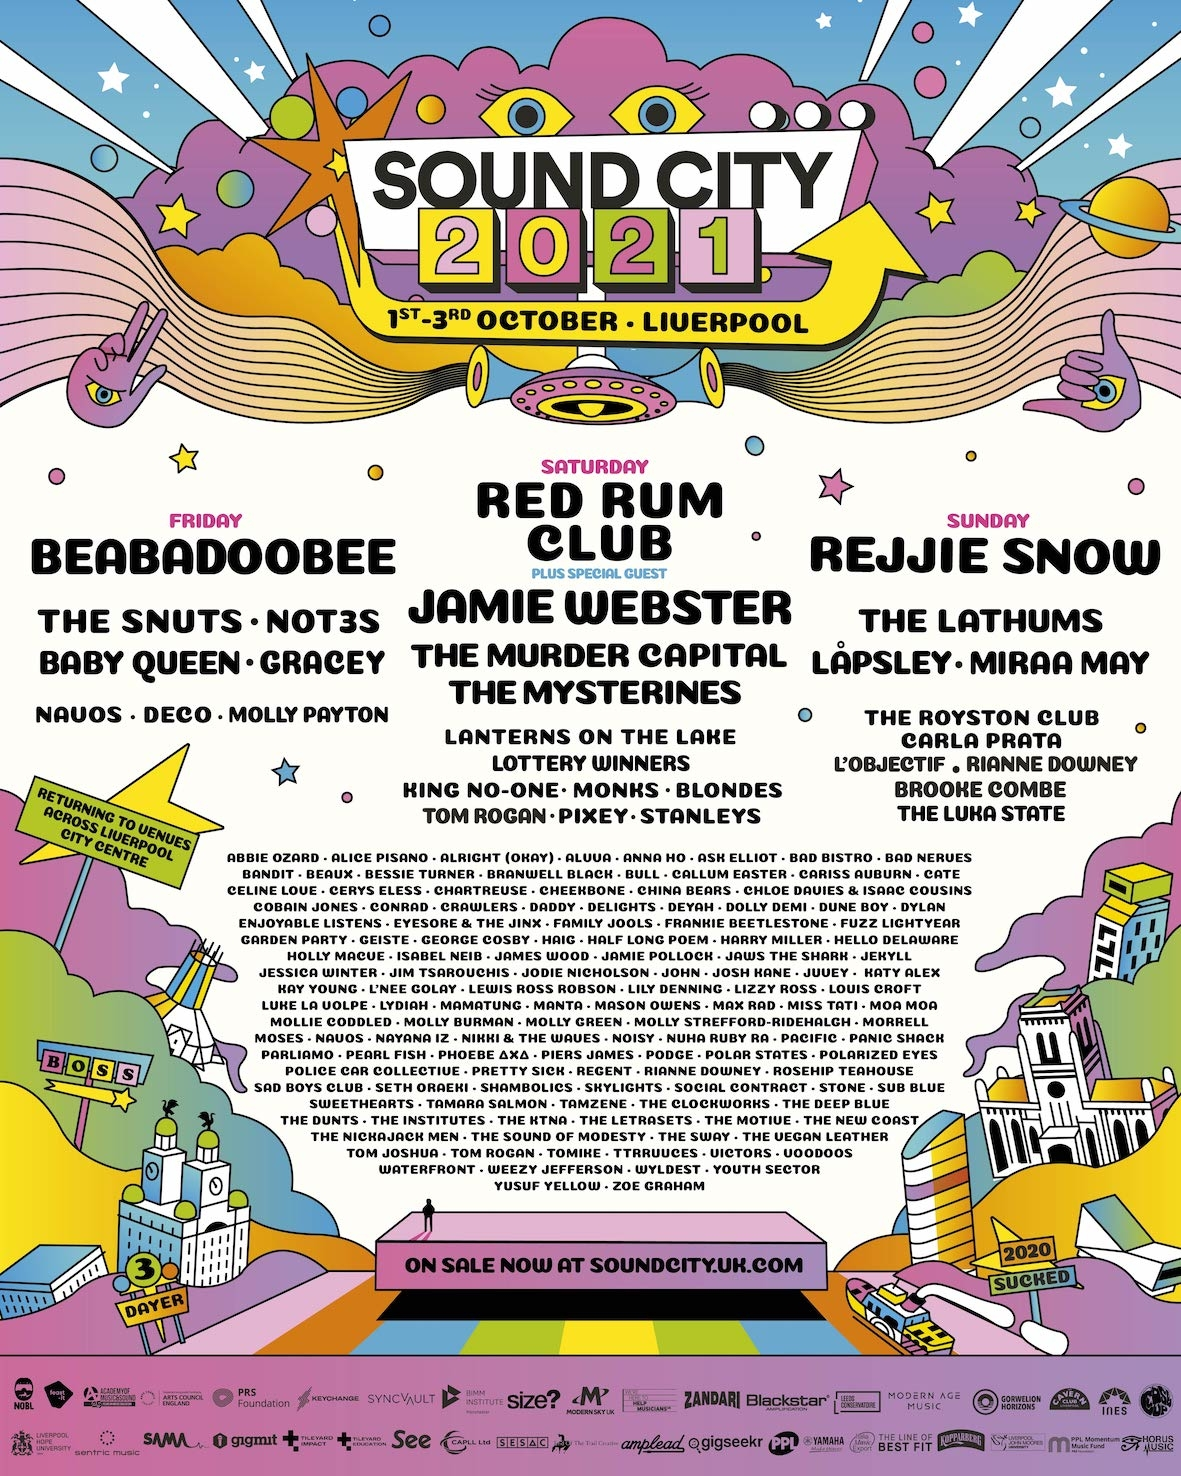 50+ Artists Added To Sound City 2021 Line-Up